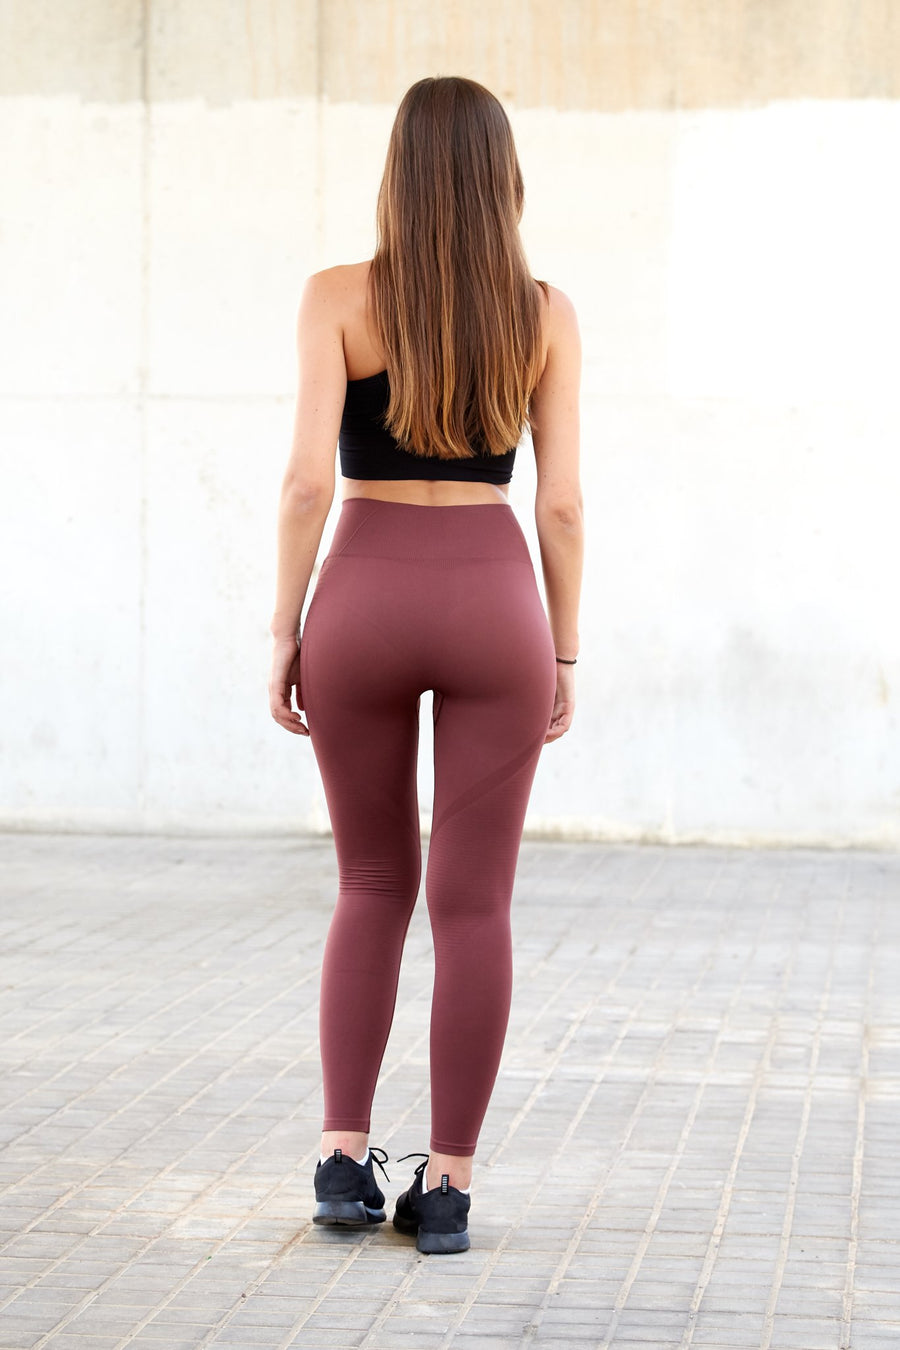 Andorra Vortex Leggings